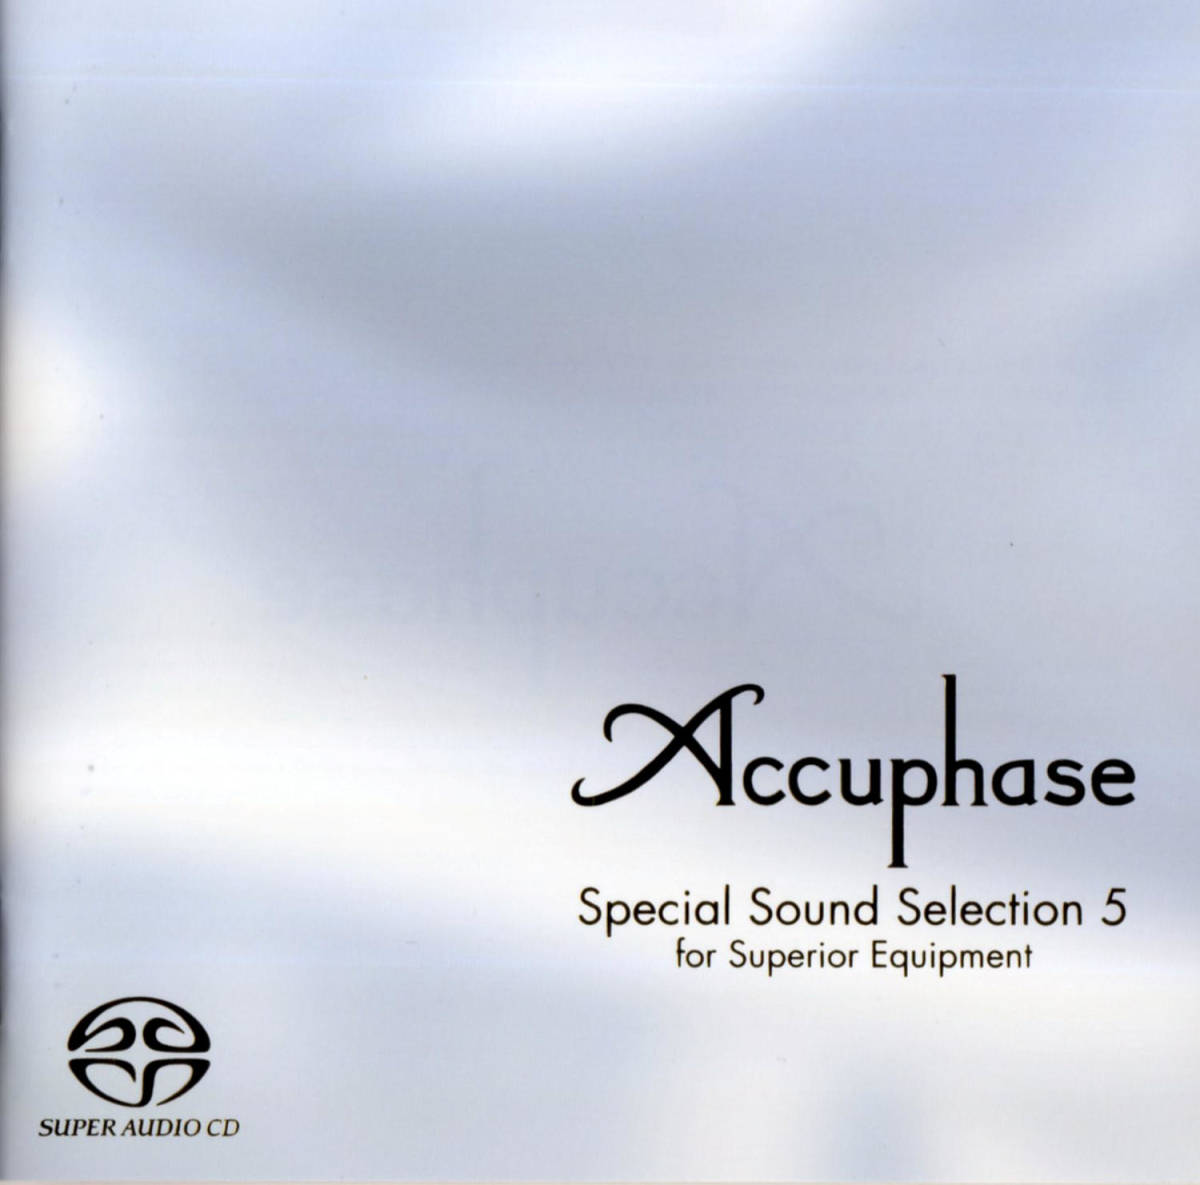 Accuphase Special Sound Selection 5